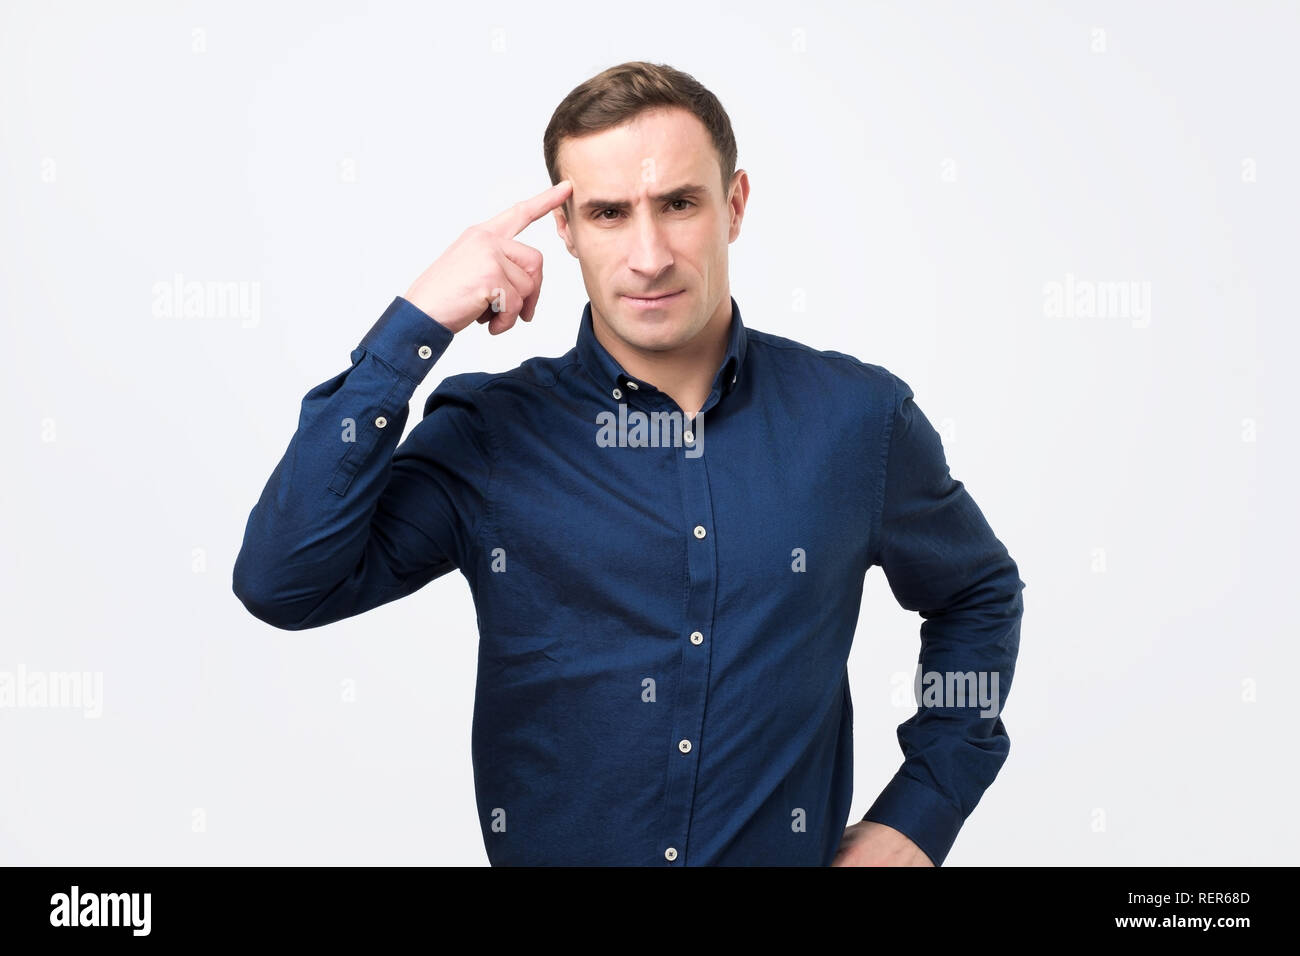 Angry italian man in blue shirt pointing at his temple arguing about job question. - Stock Image